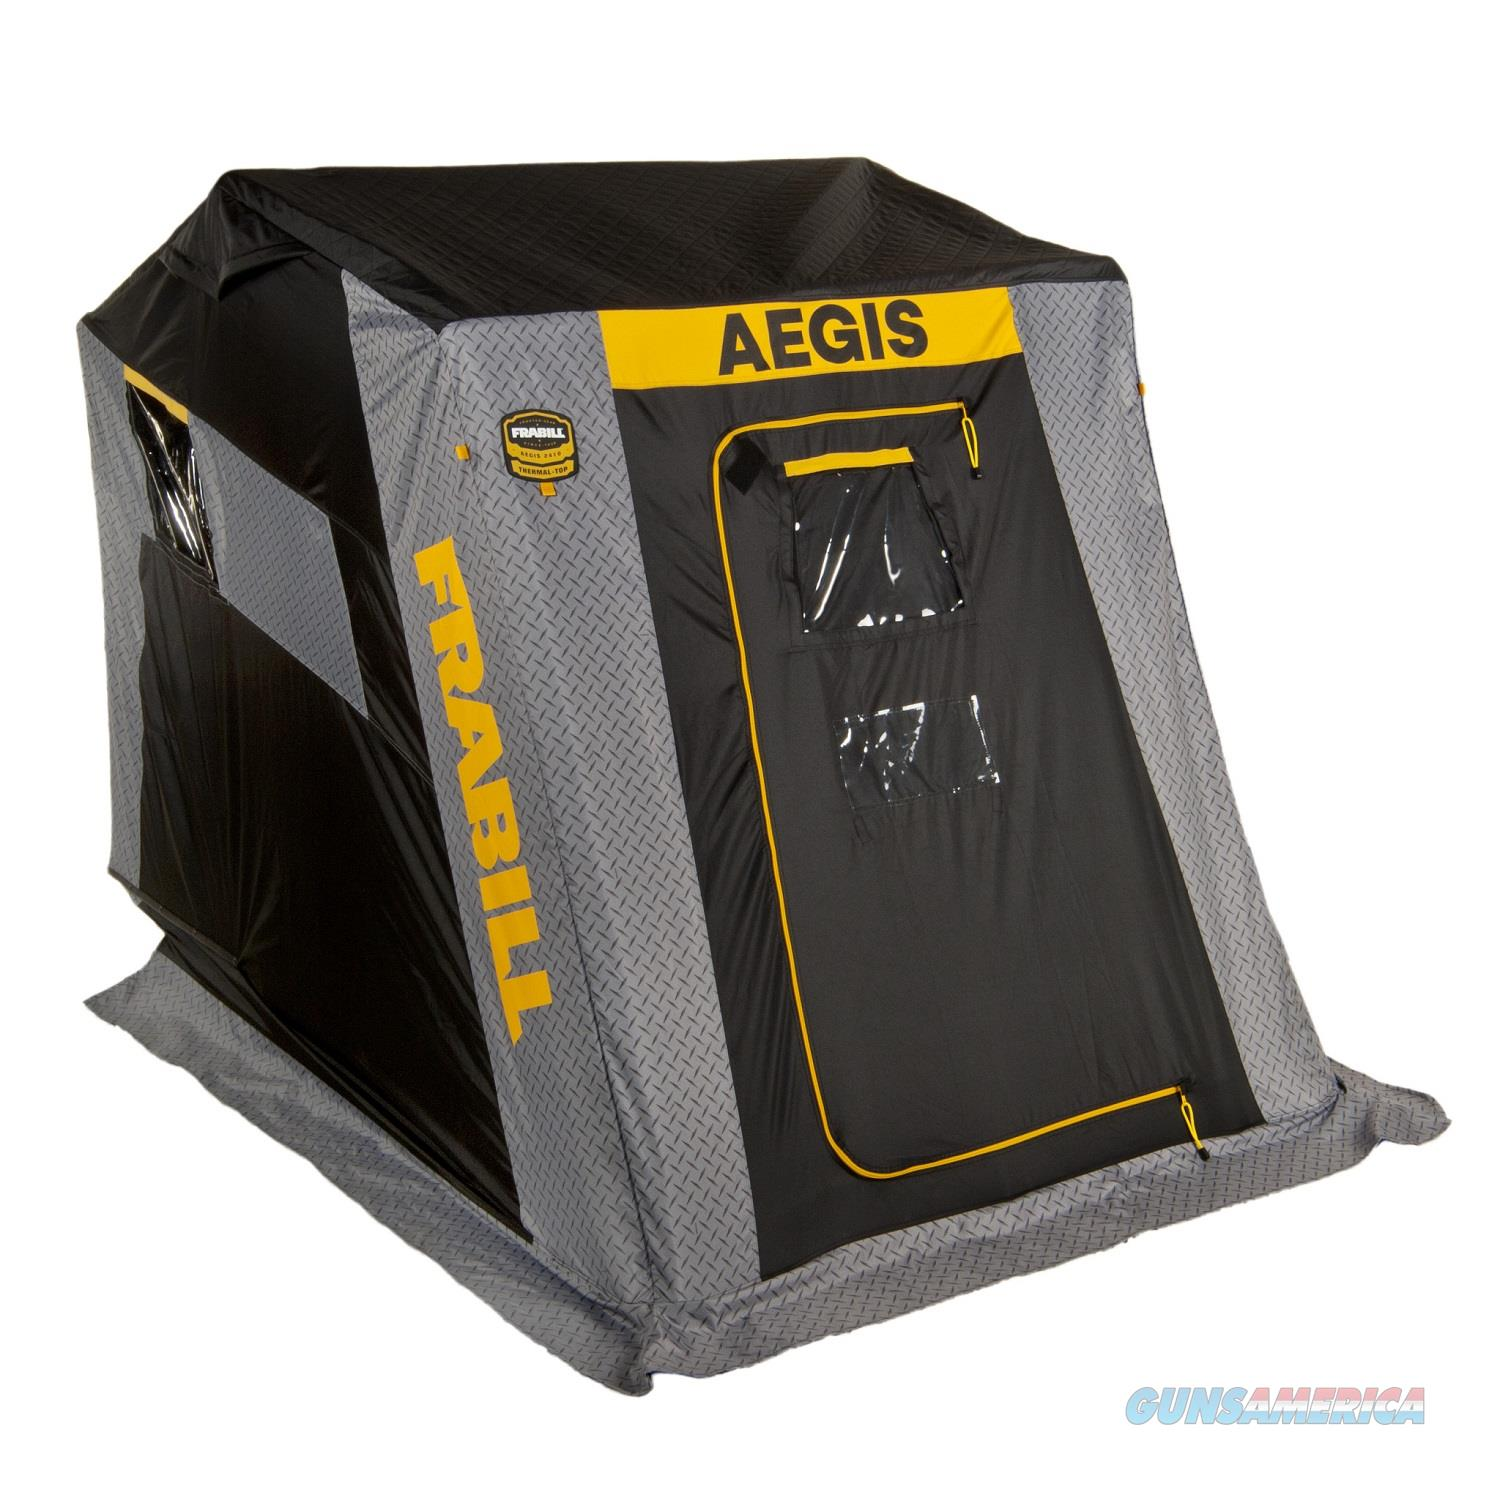 Frabill Aegis 2110 Top Insulated Flip-Over Shelter Jump Seat 640410  Non-Guns > Fishing/Spearfishing